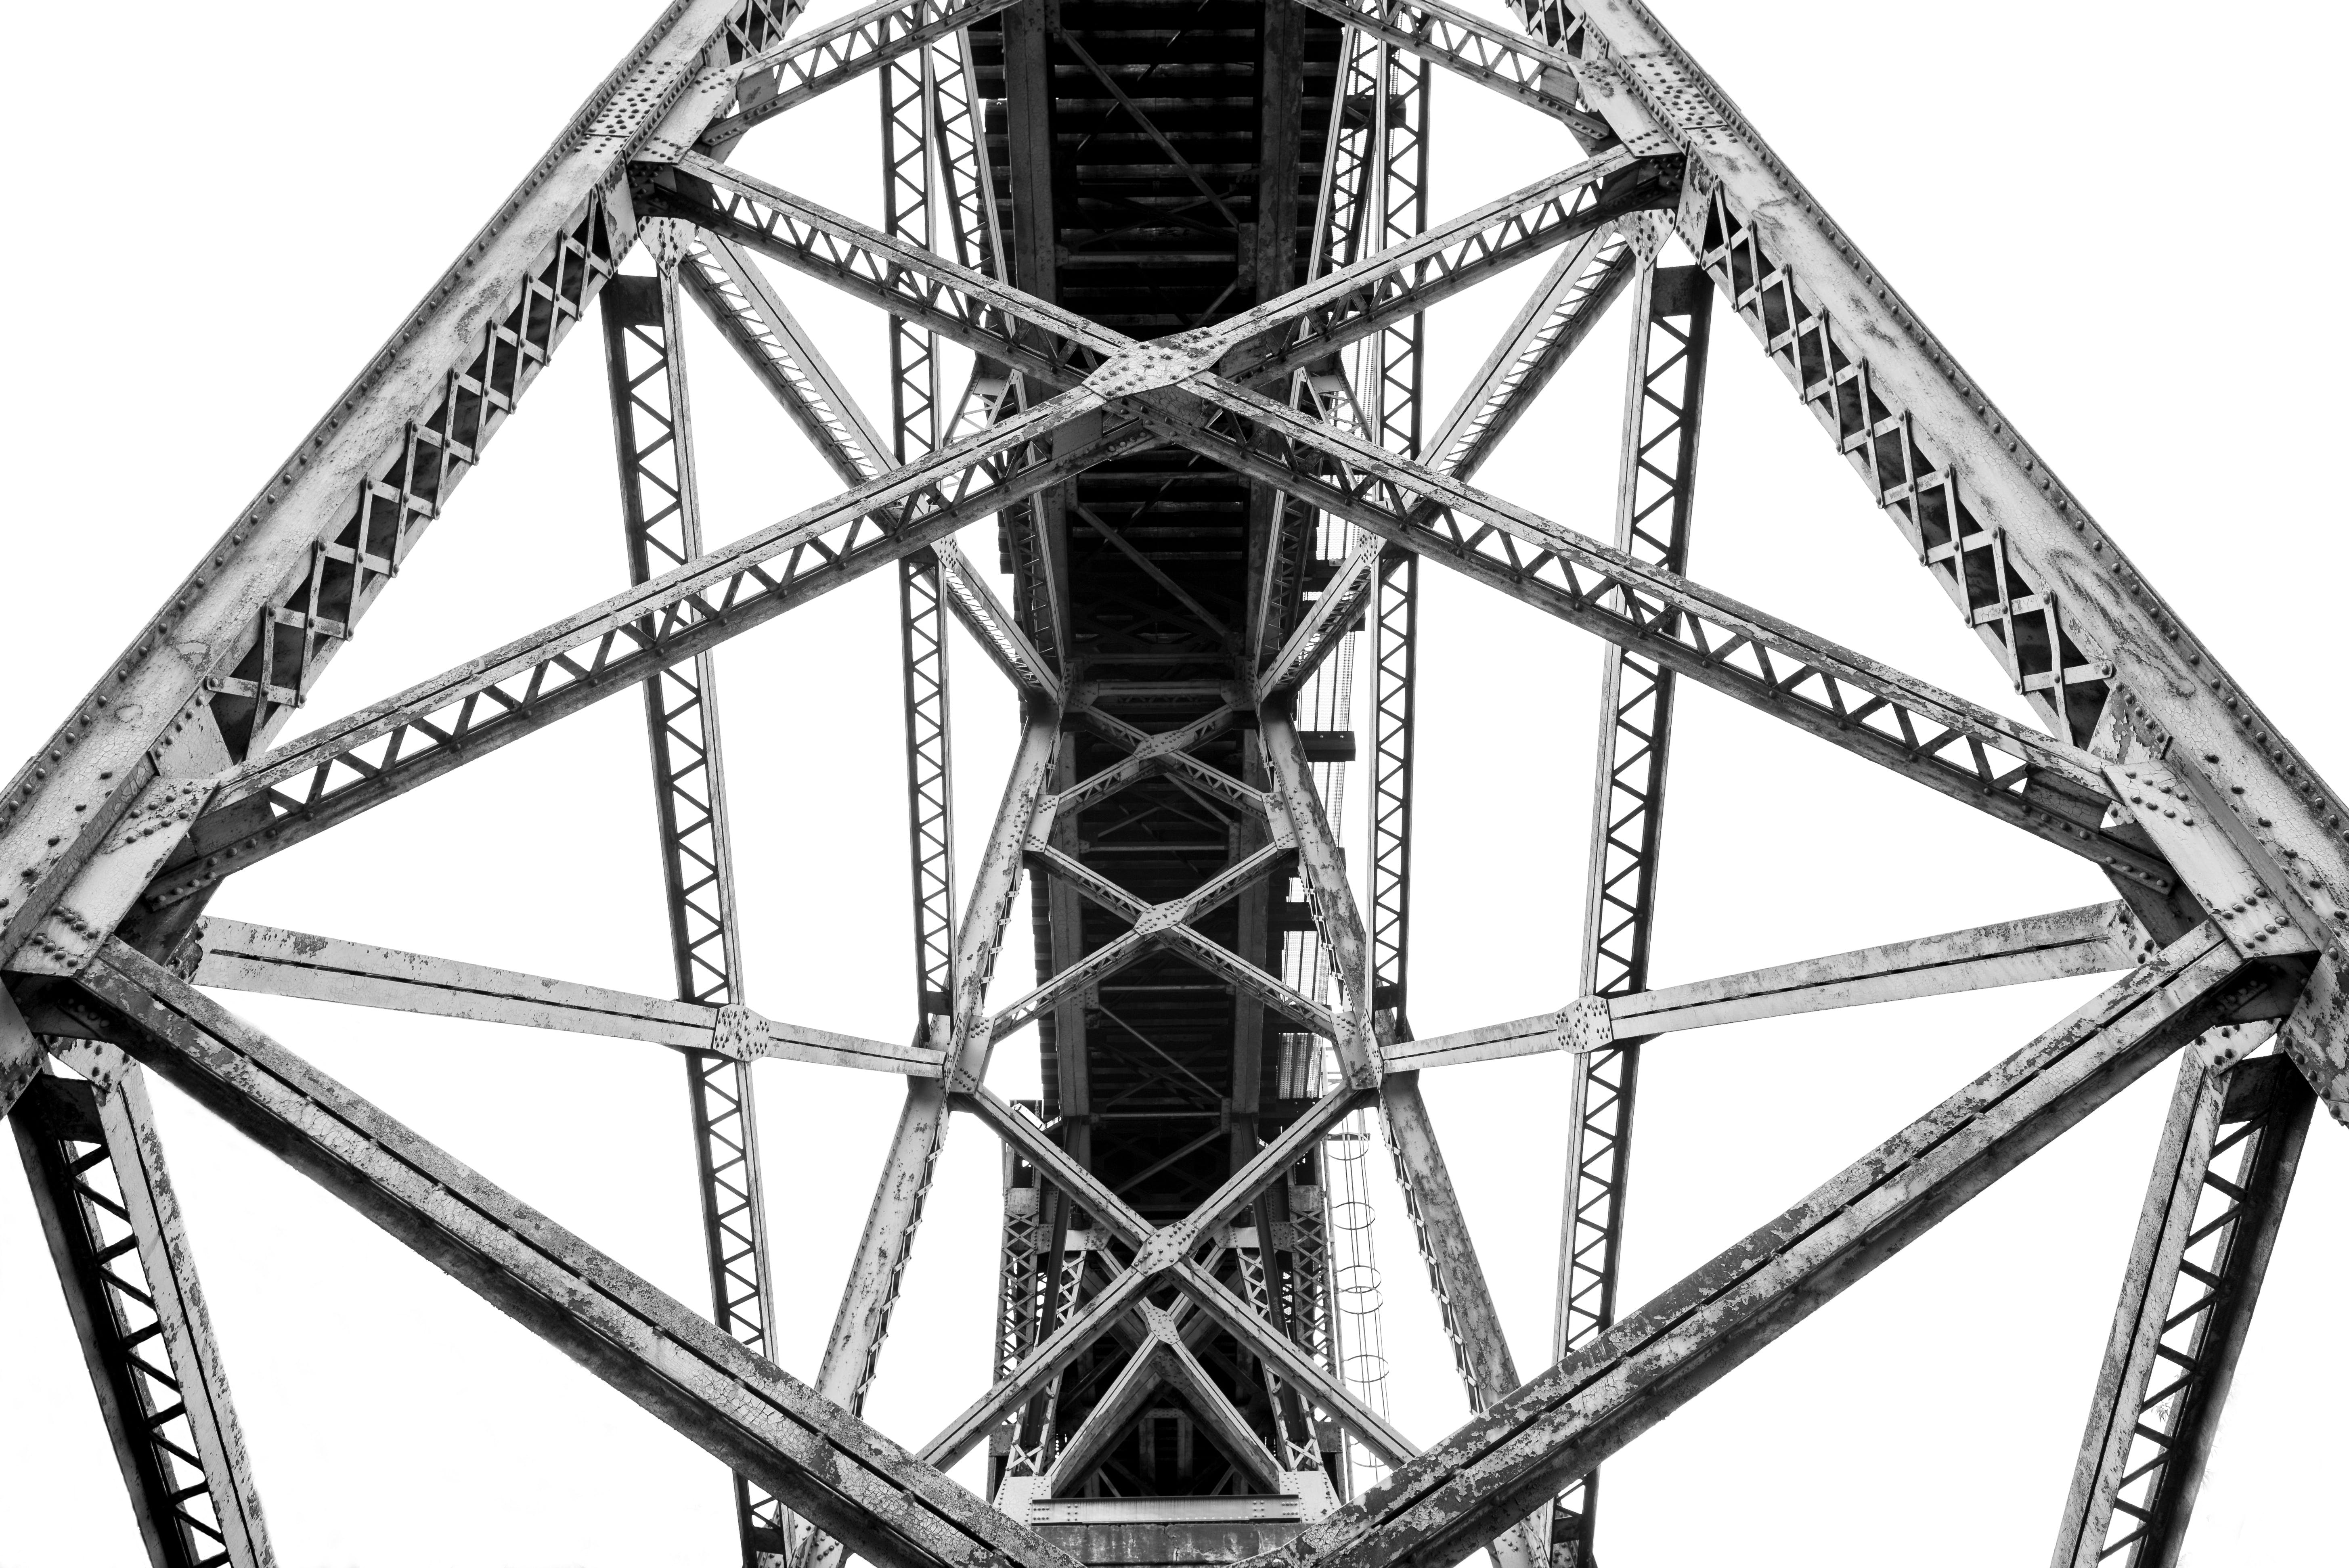 Worms Eye View Photography of Steel Structure